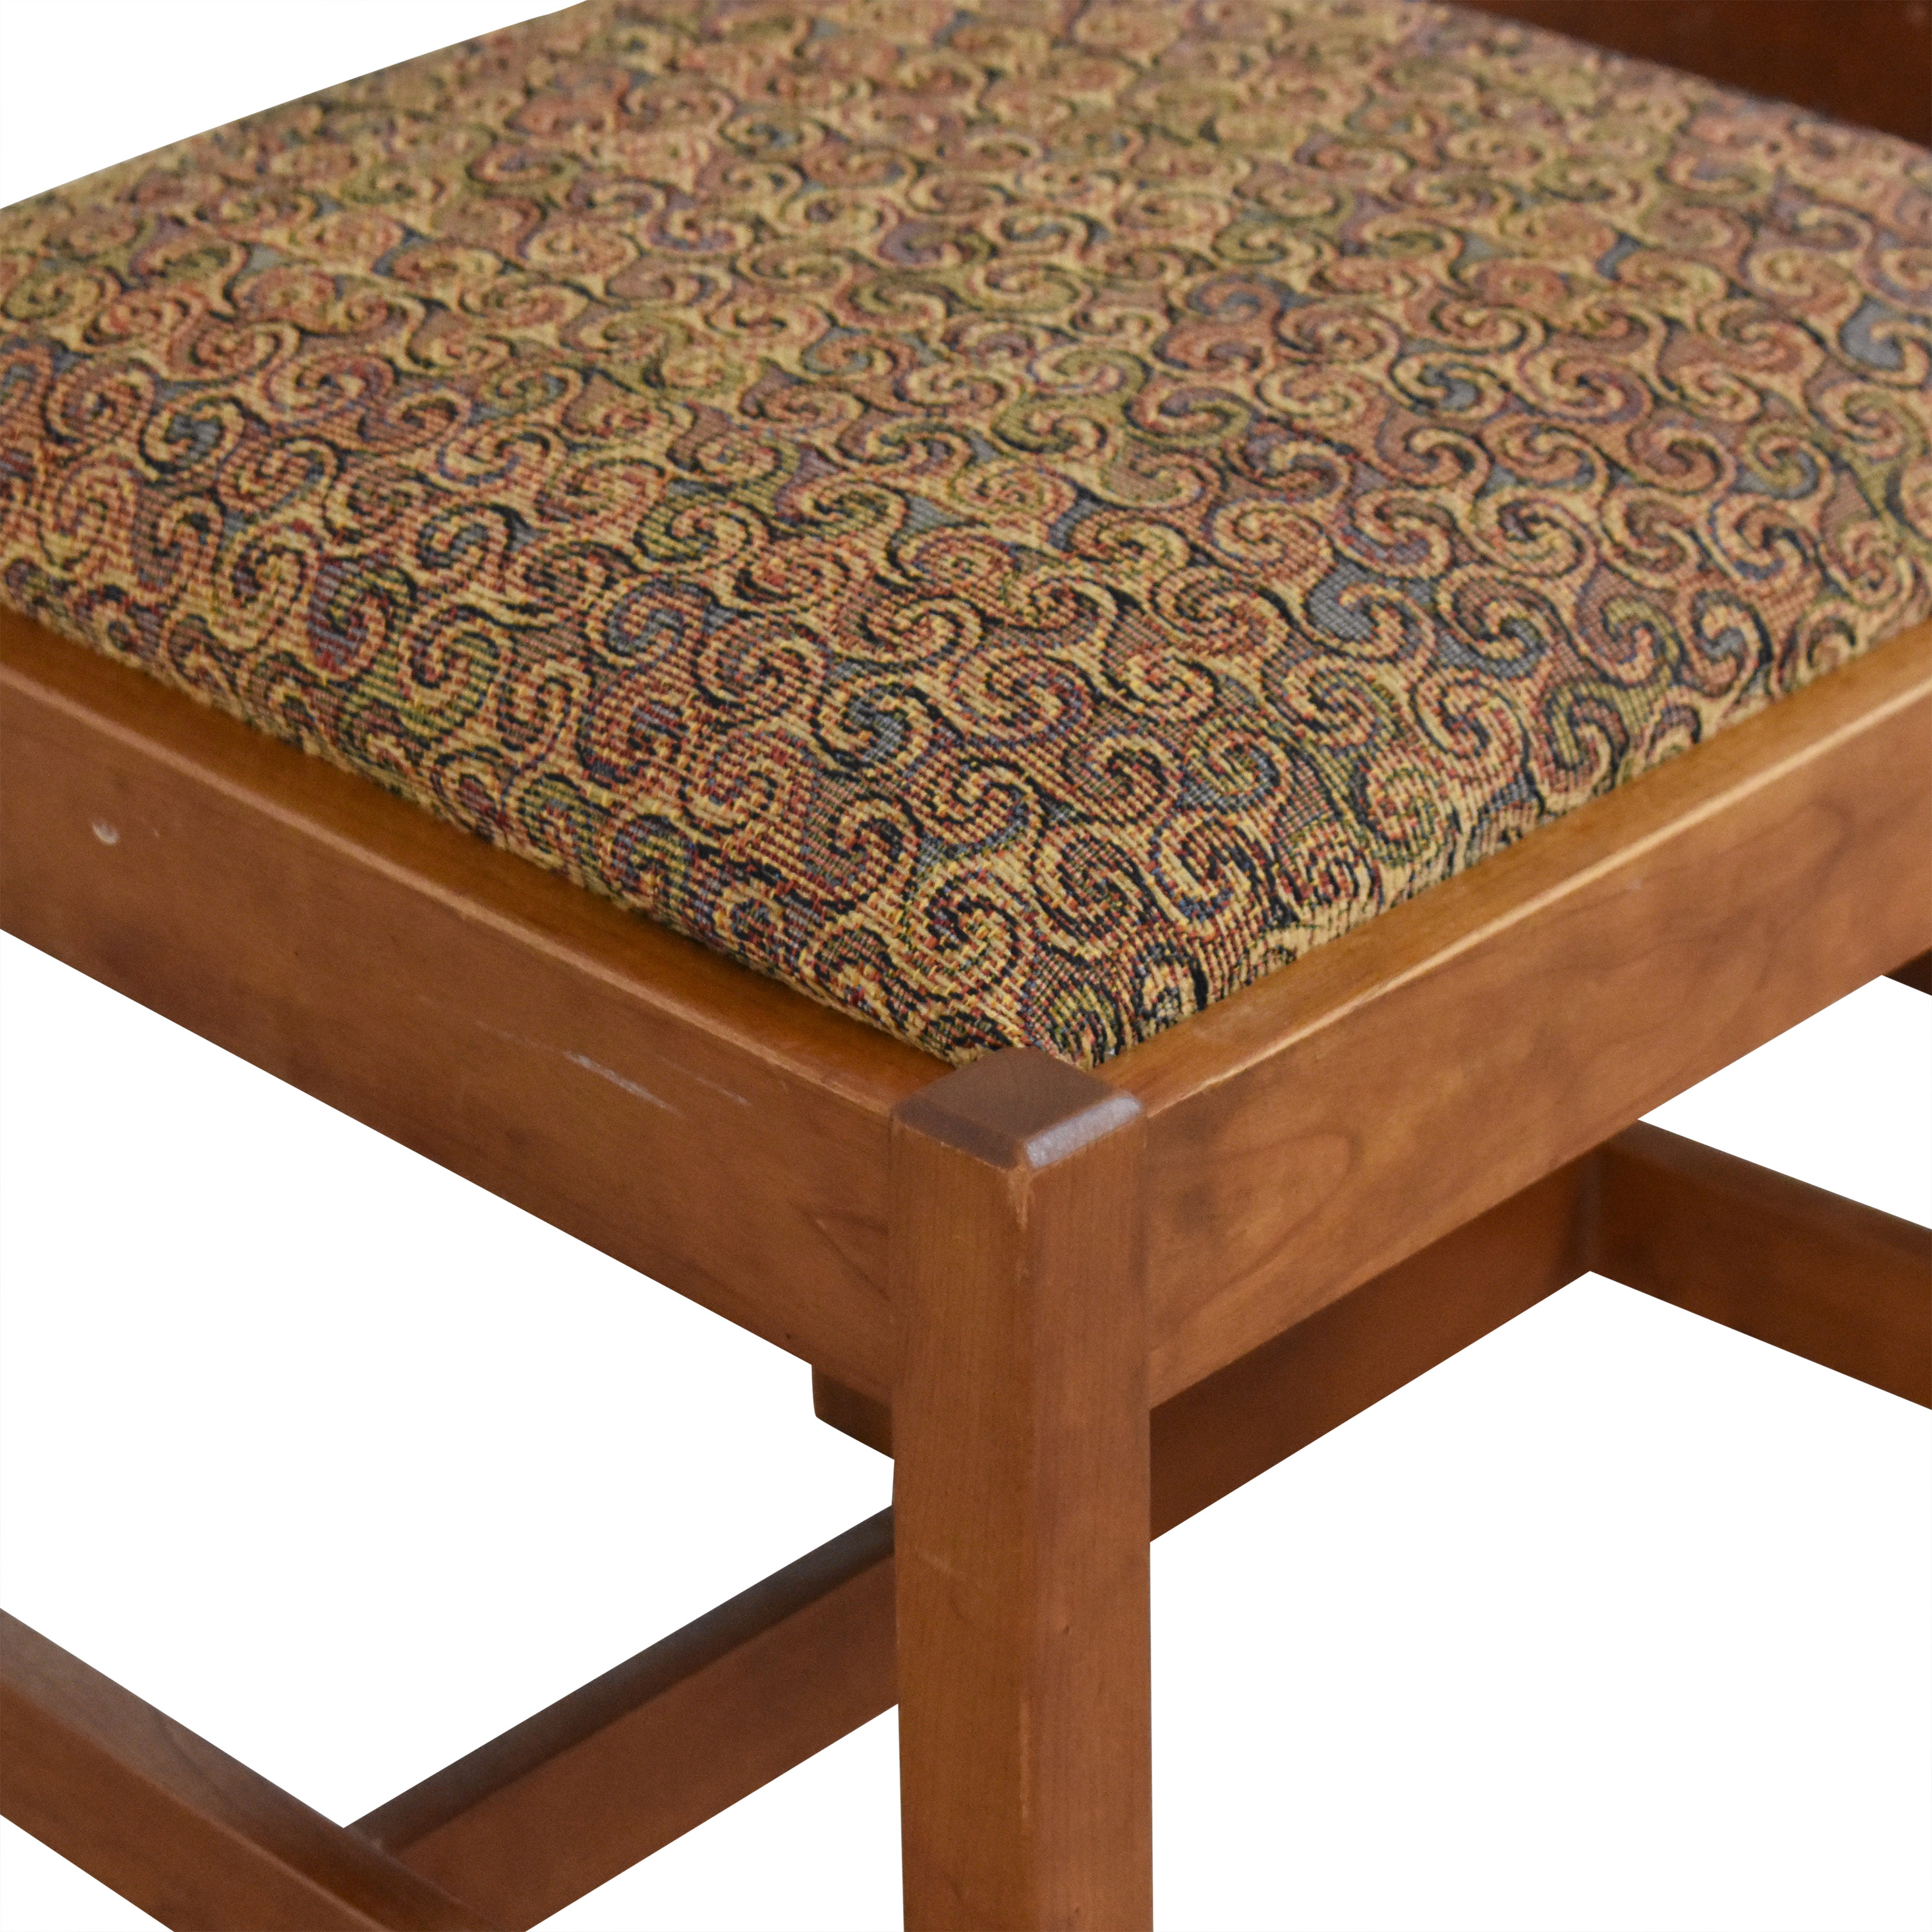 Stickley Furniture Stickley Furniture Shaker Dining Side Chairs ct